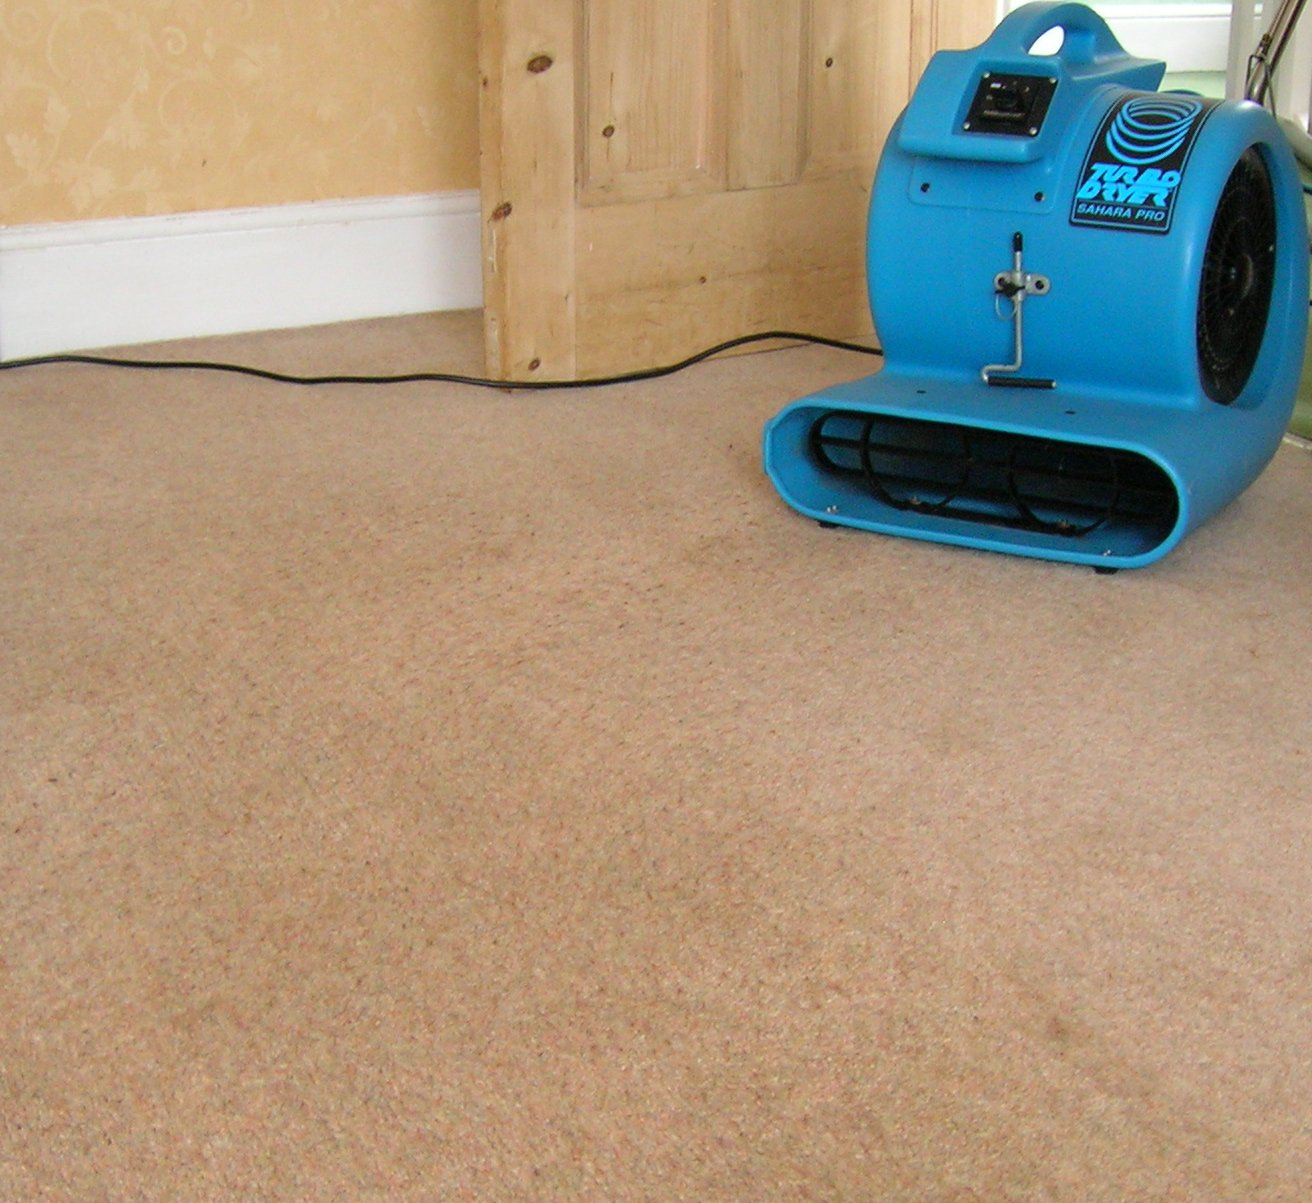 An air blower being used to dry a carpet